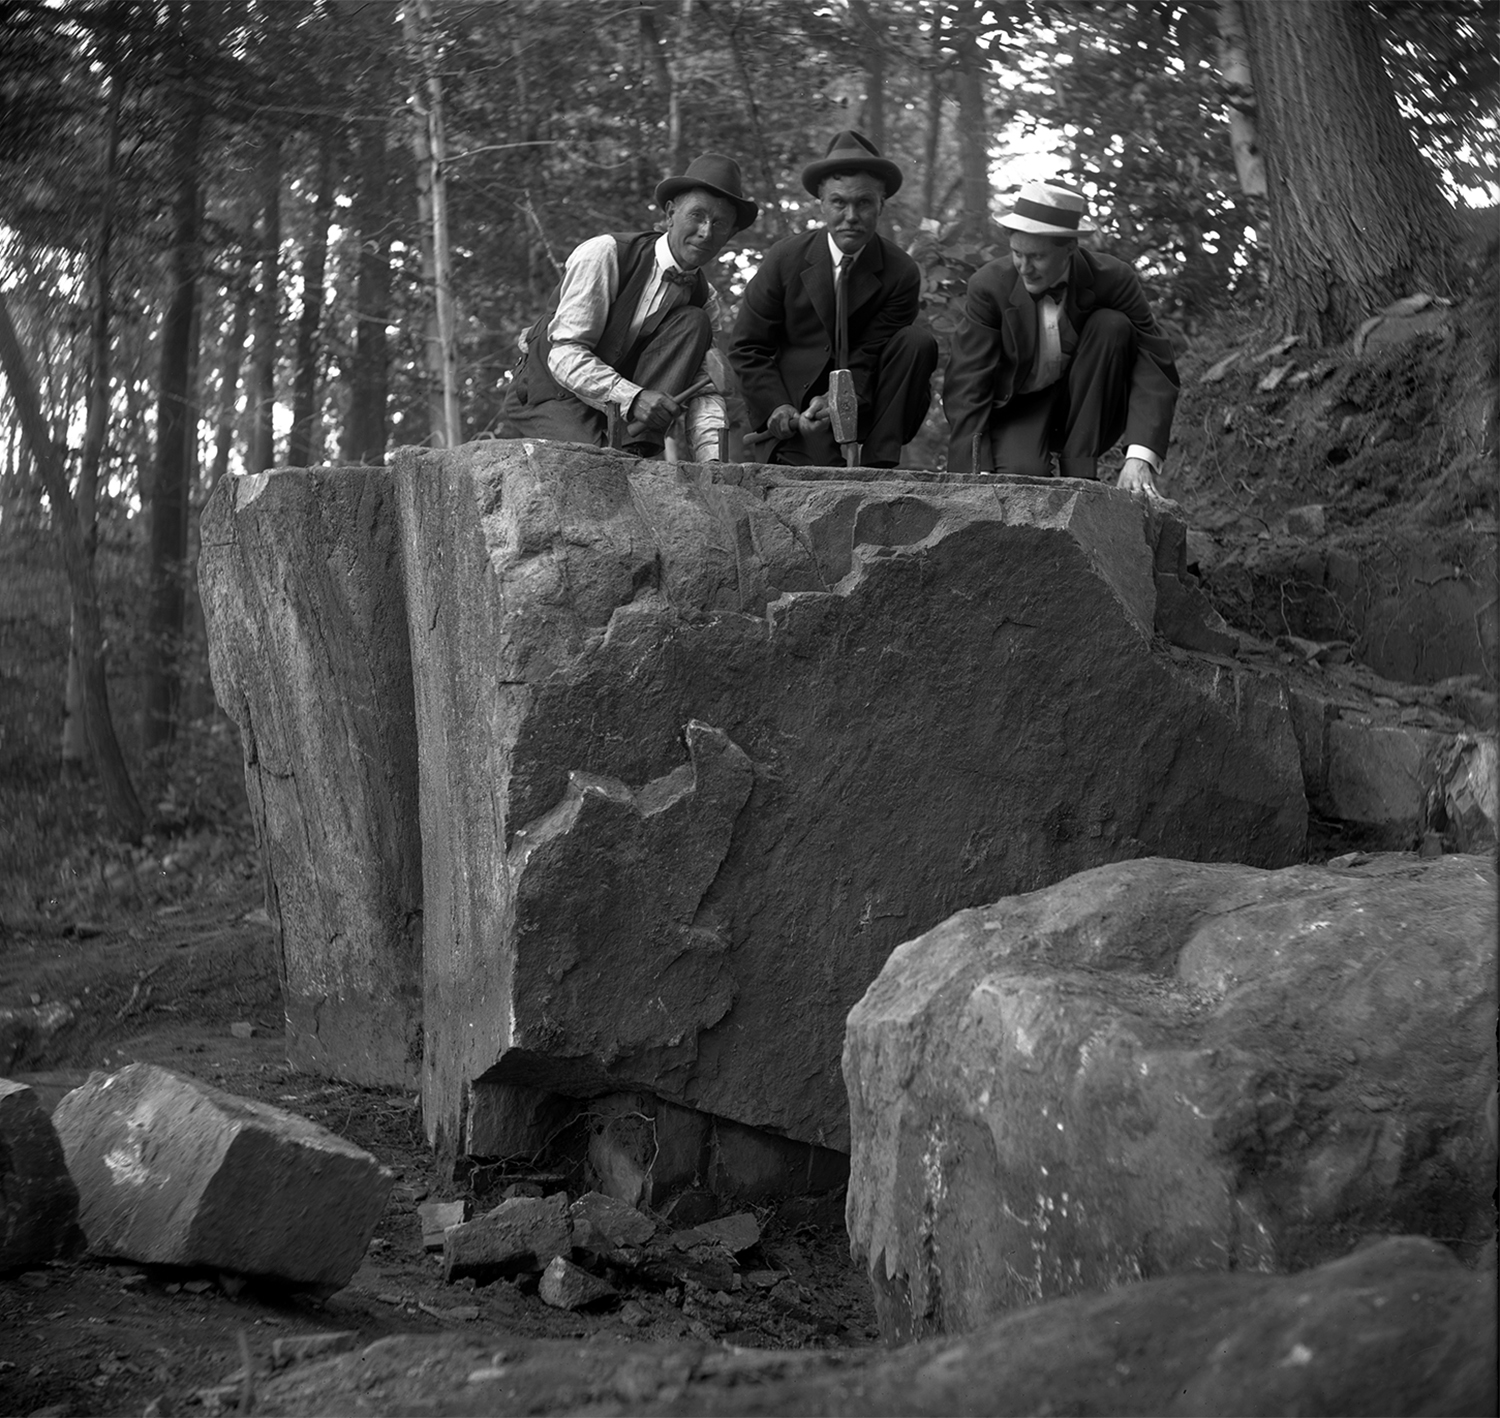 Figure 4: From left to right, Edward Kessel, Pringle Borthwick, and Raymond Pitcairn strike a pose with hammers and wedges in preparation for splitting the cornerstone from the boulder.